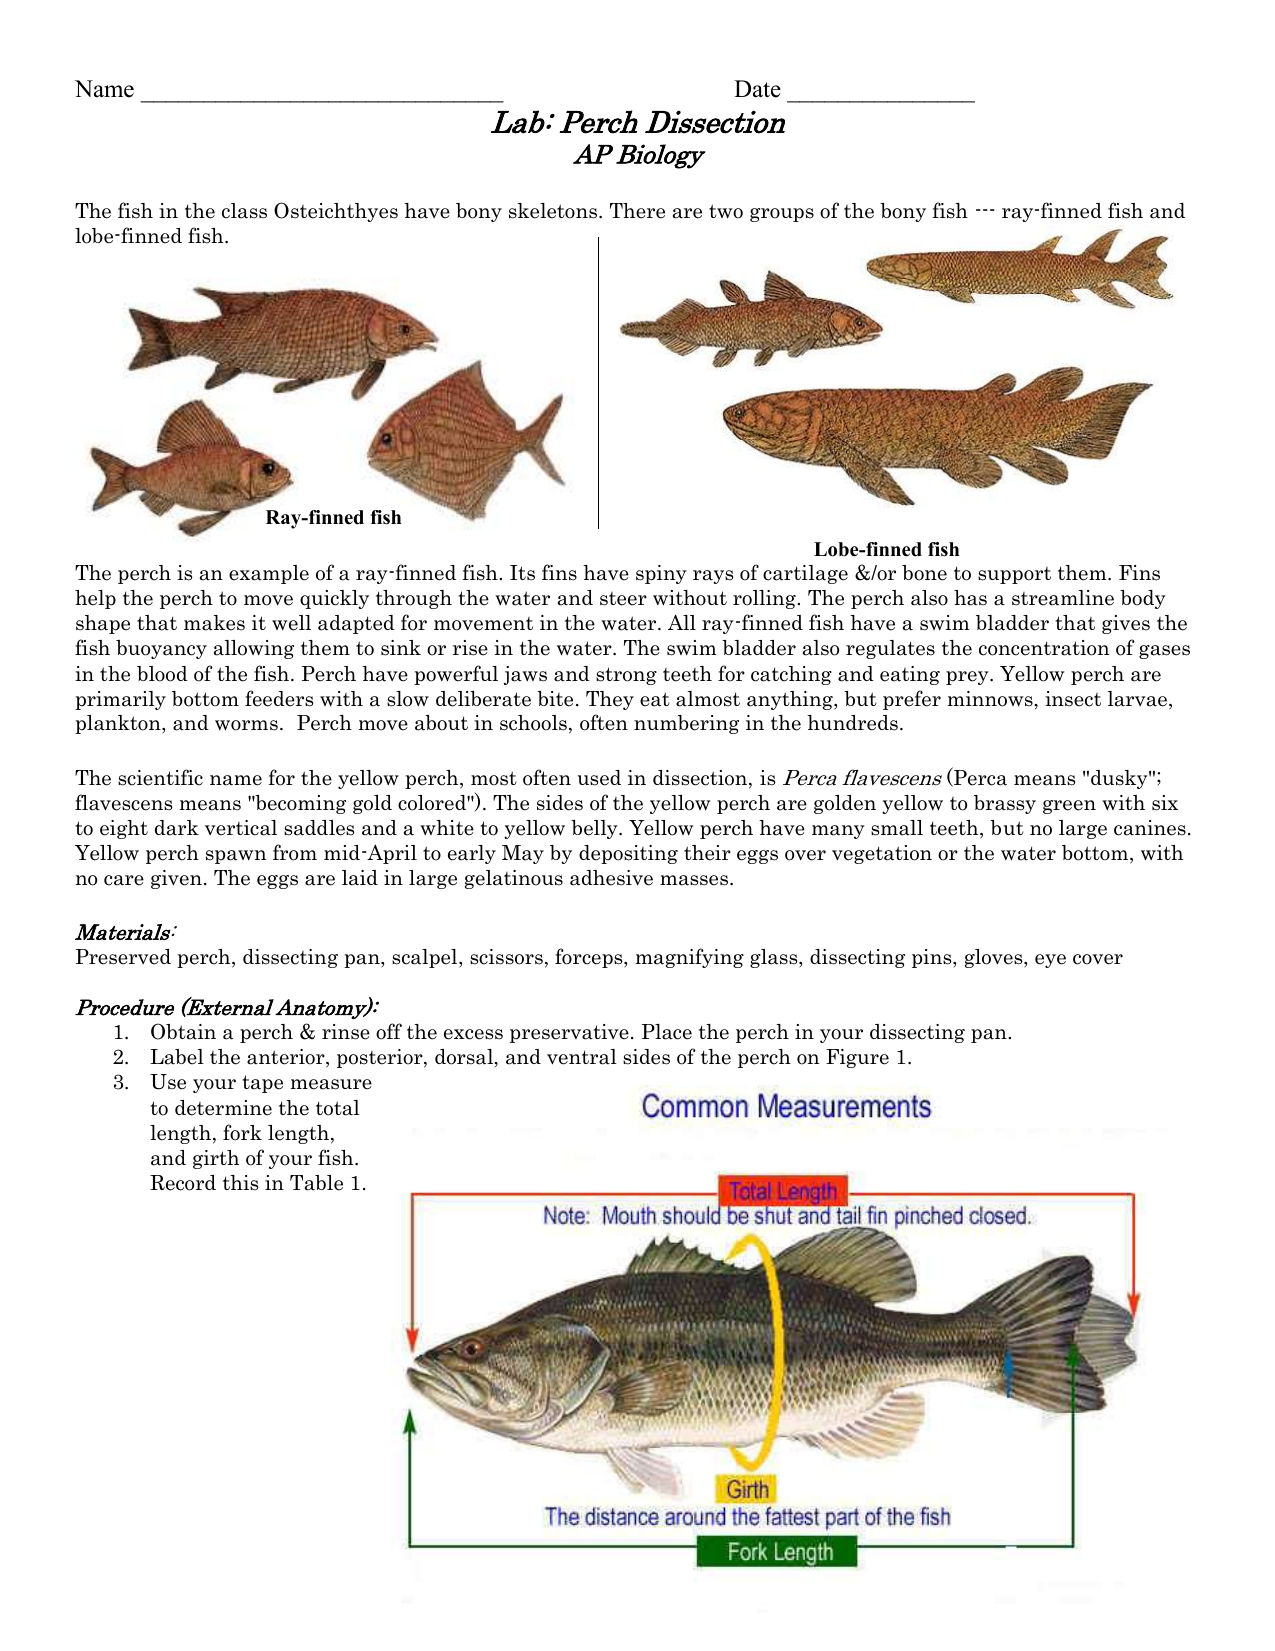 Perch Dissection - APBiologyIsSuper